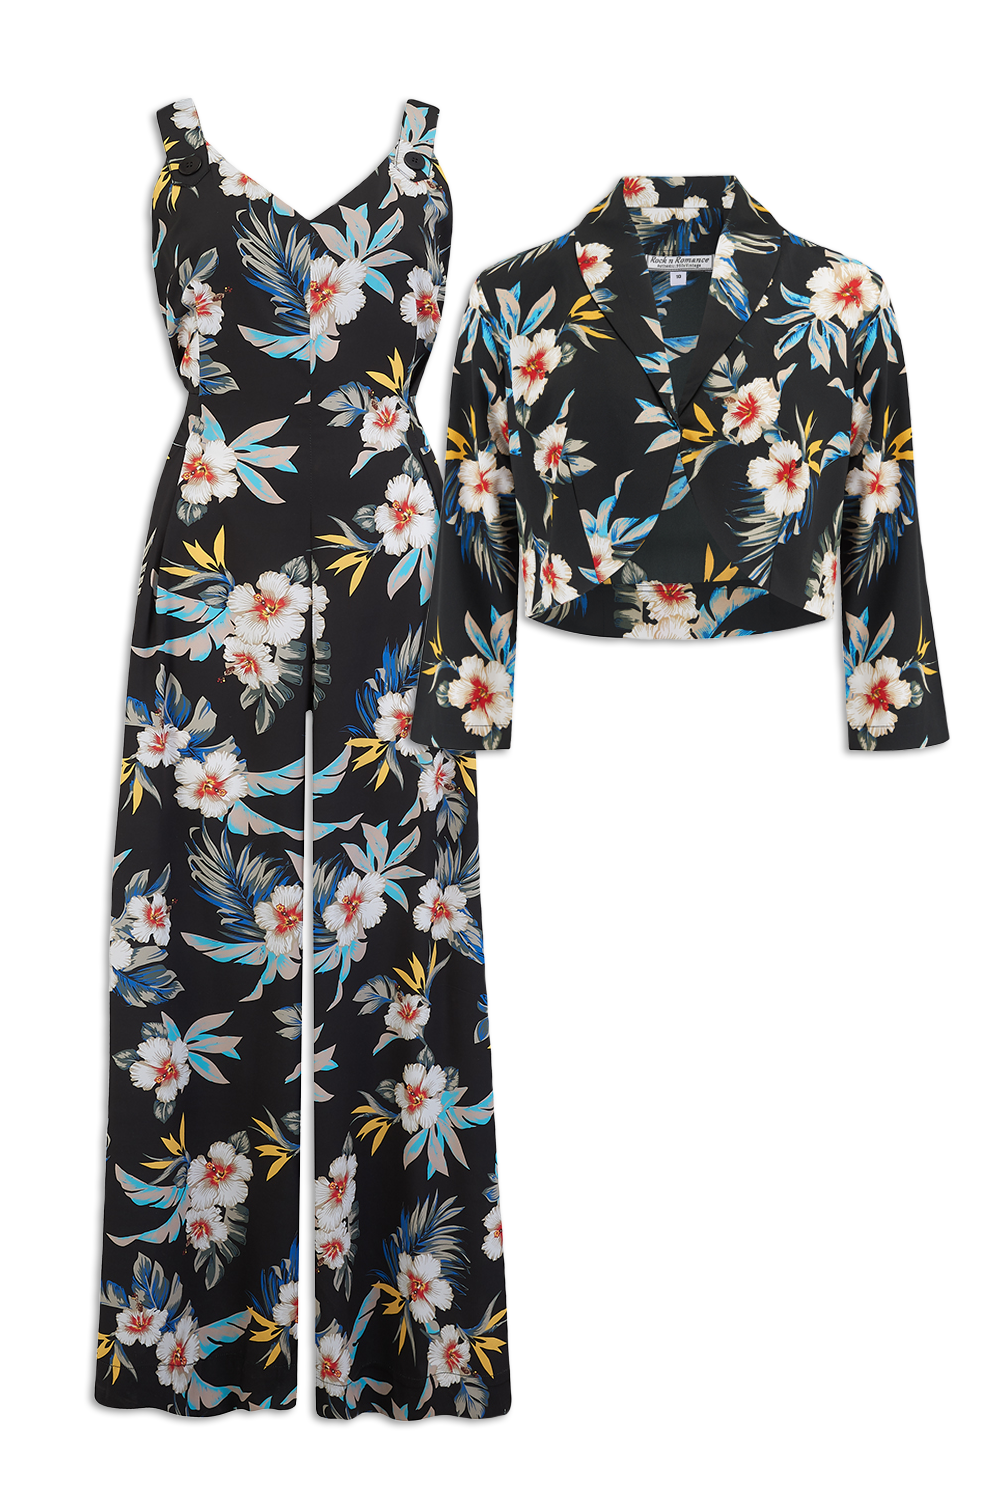 """Lana"" Jump Suit & Bolero 2pc Set in Black Hawaiian Print, Classic 1950s Style, New for AW19"